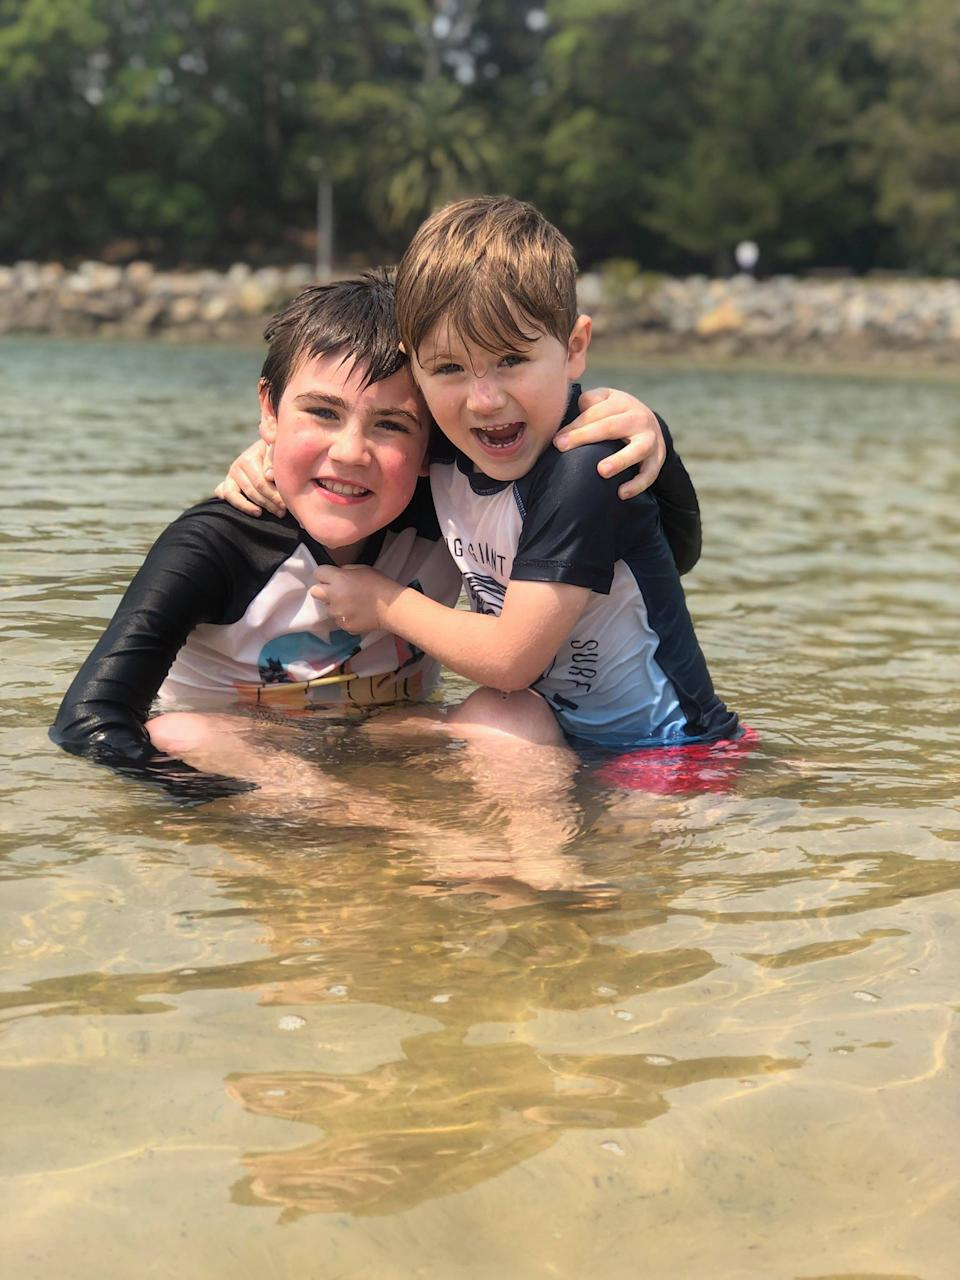 Pictured is Riley (left) and Tarek swimming, which mother Vanessa Brown says is the best form of exercise for them.